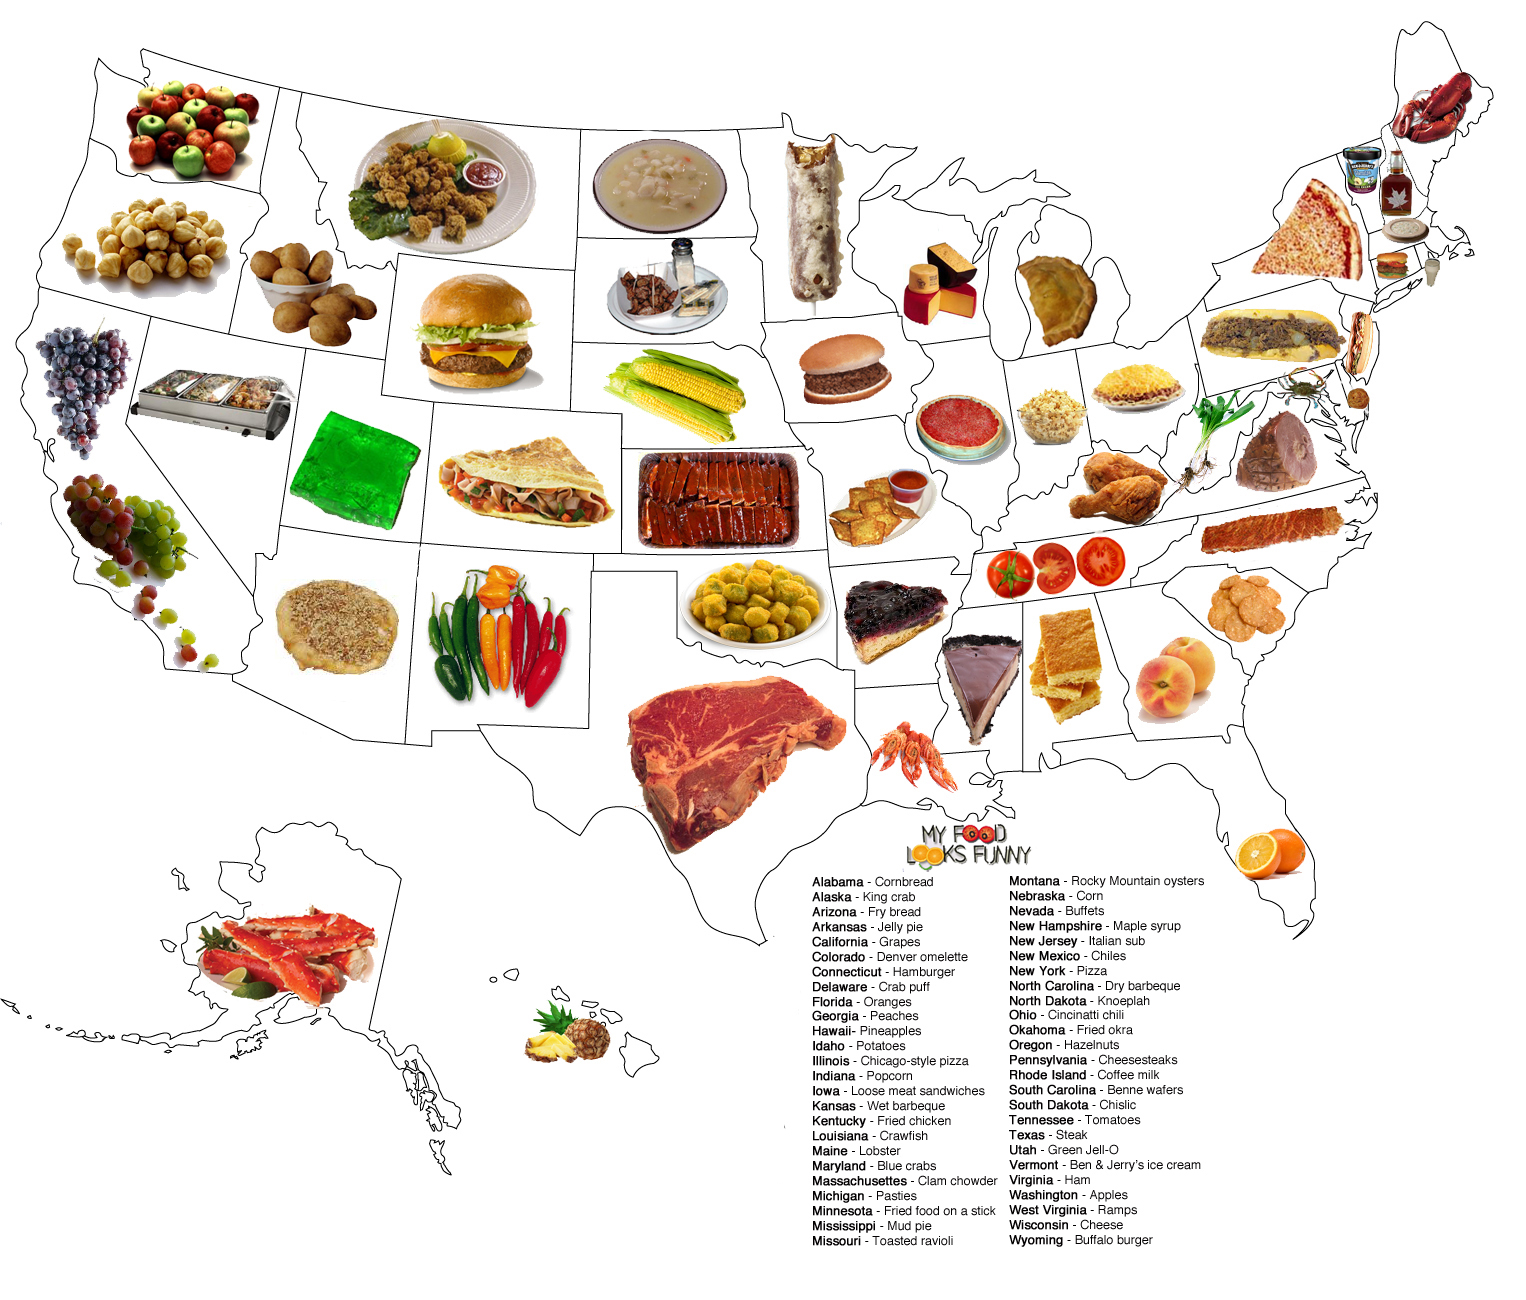 State Food Map [INFOGRAPHIC] - Infographic List